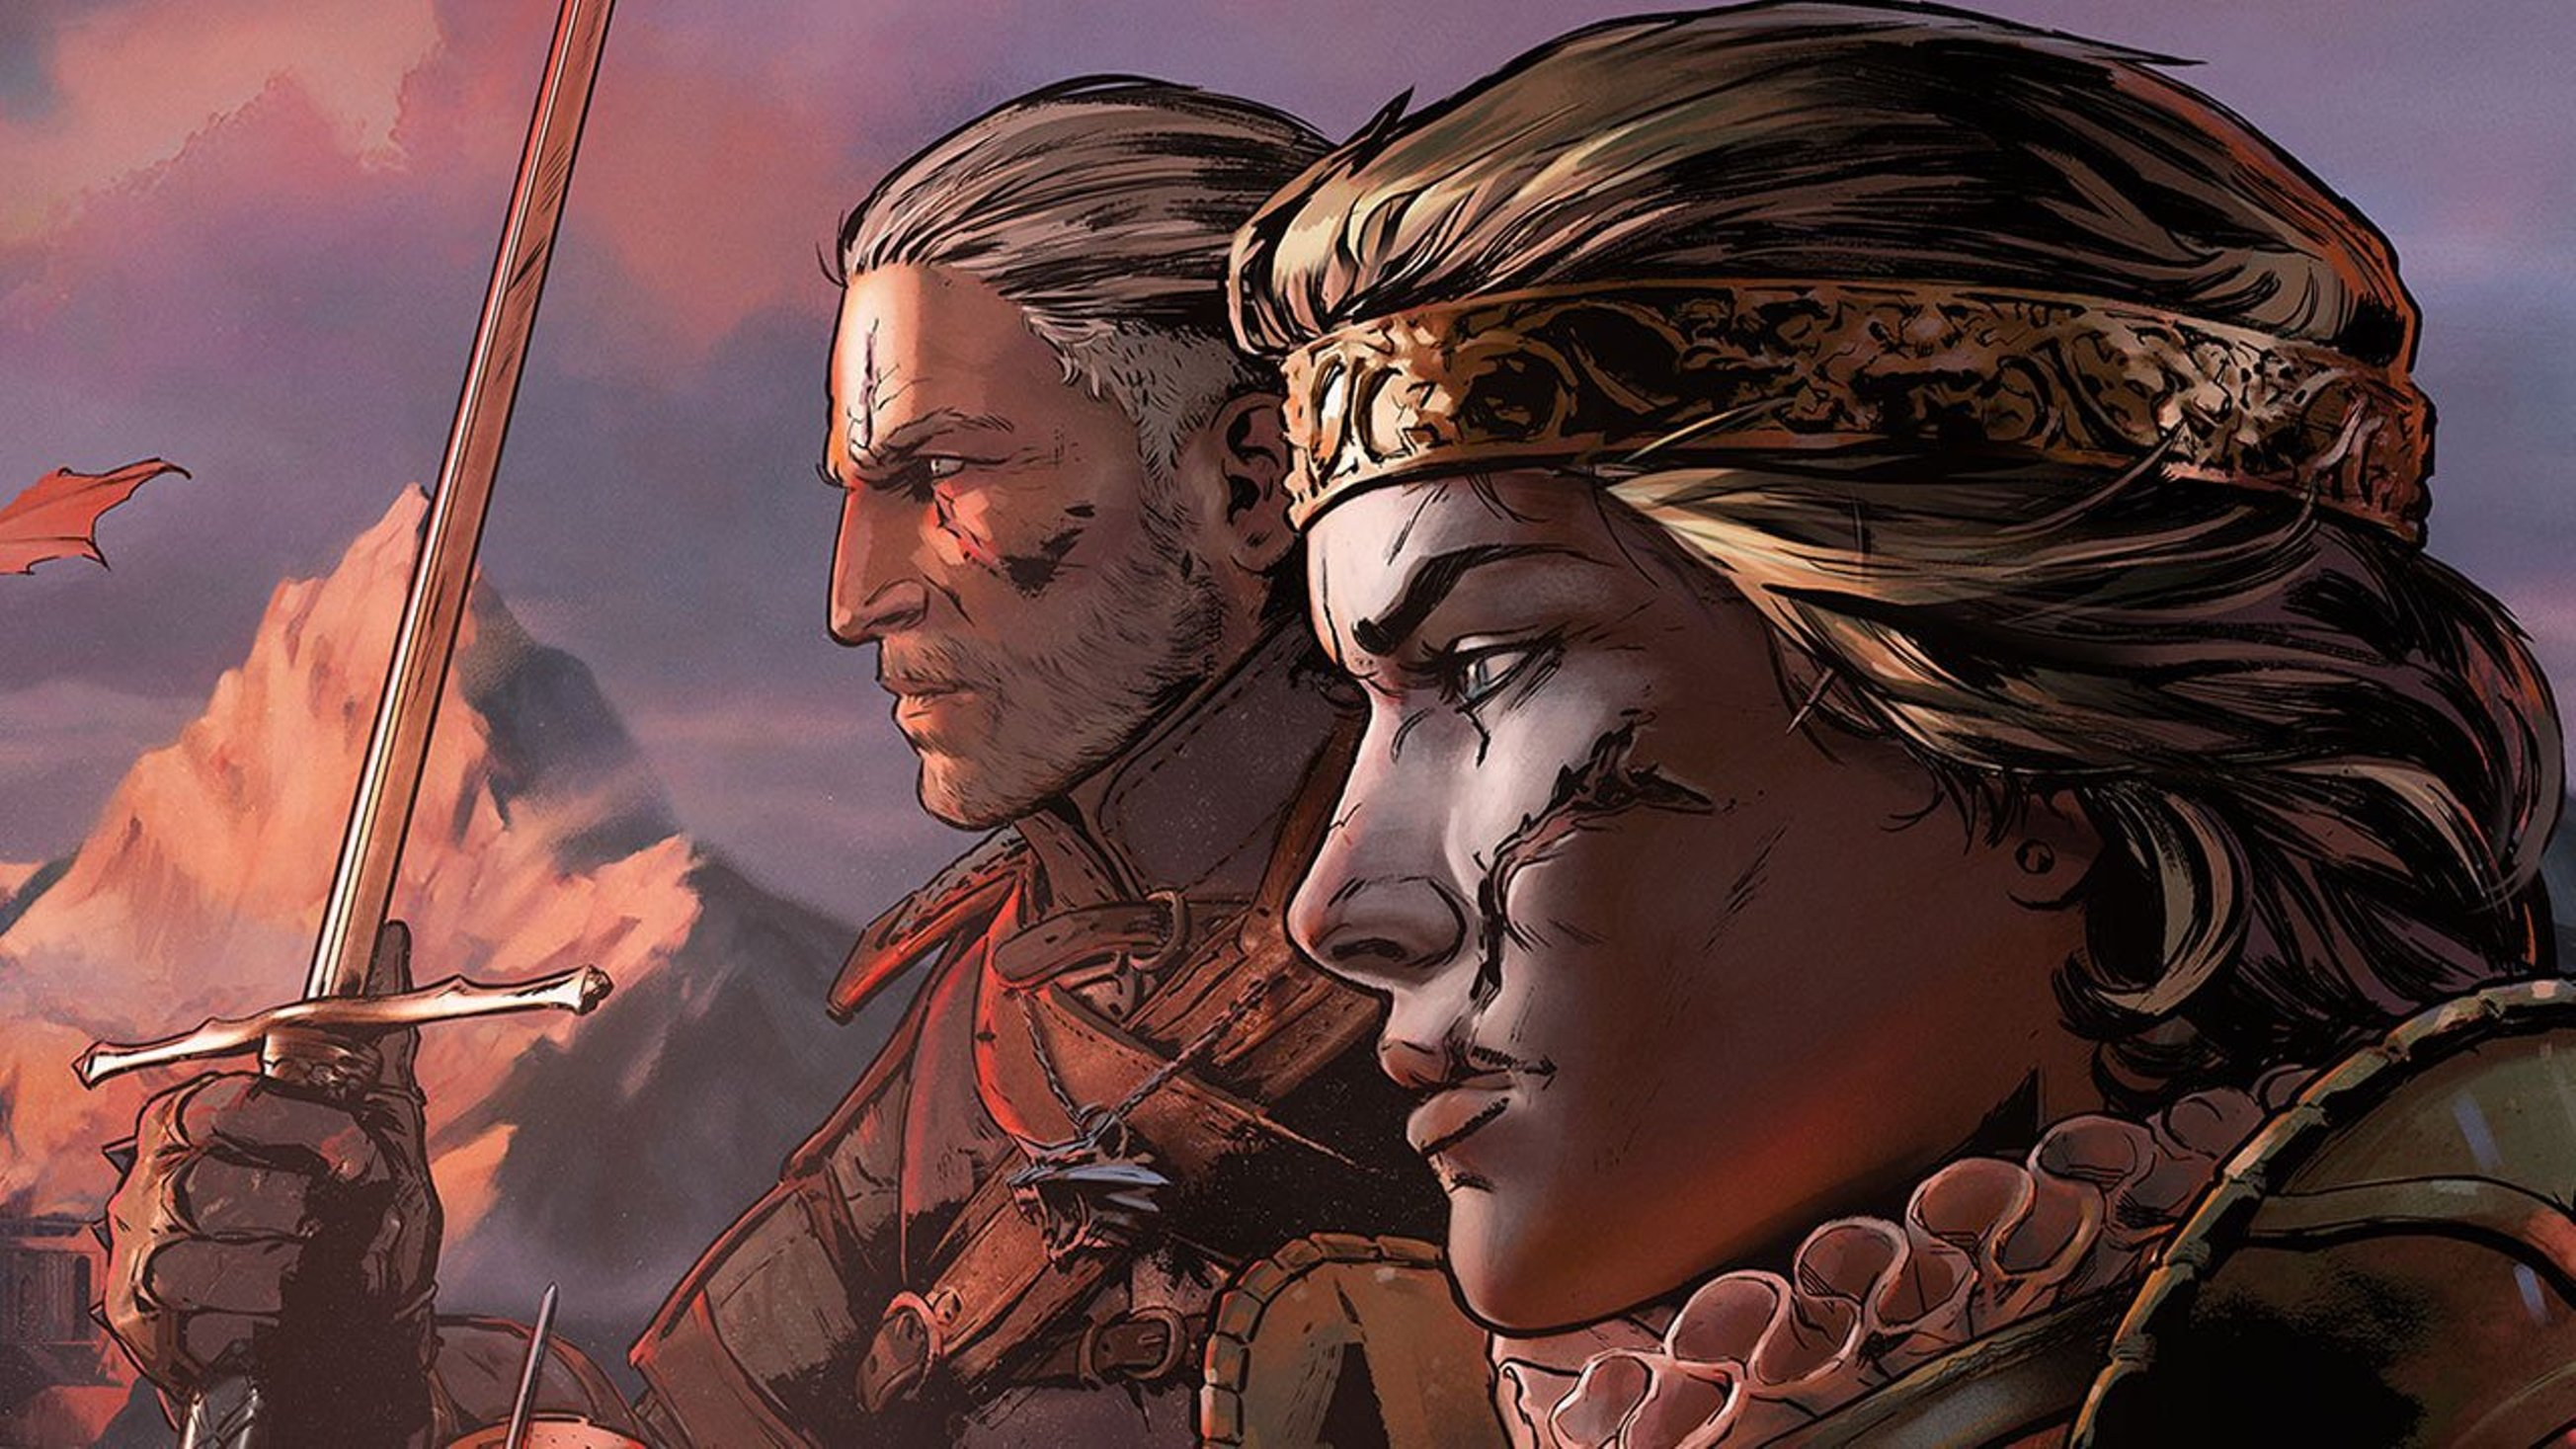 CD Projekt недовольны продажами Thronebreaker: The Witcher Tales